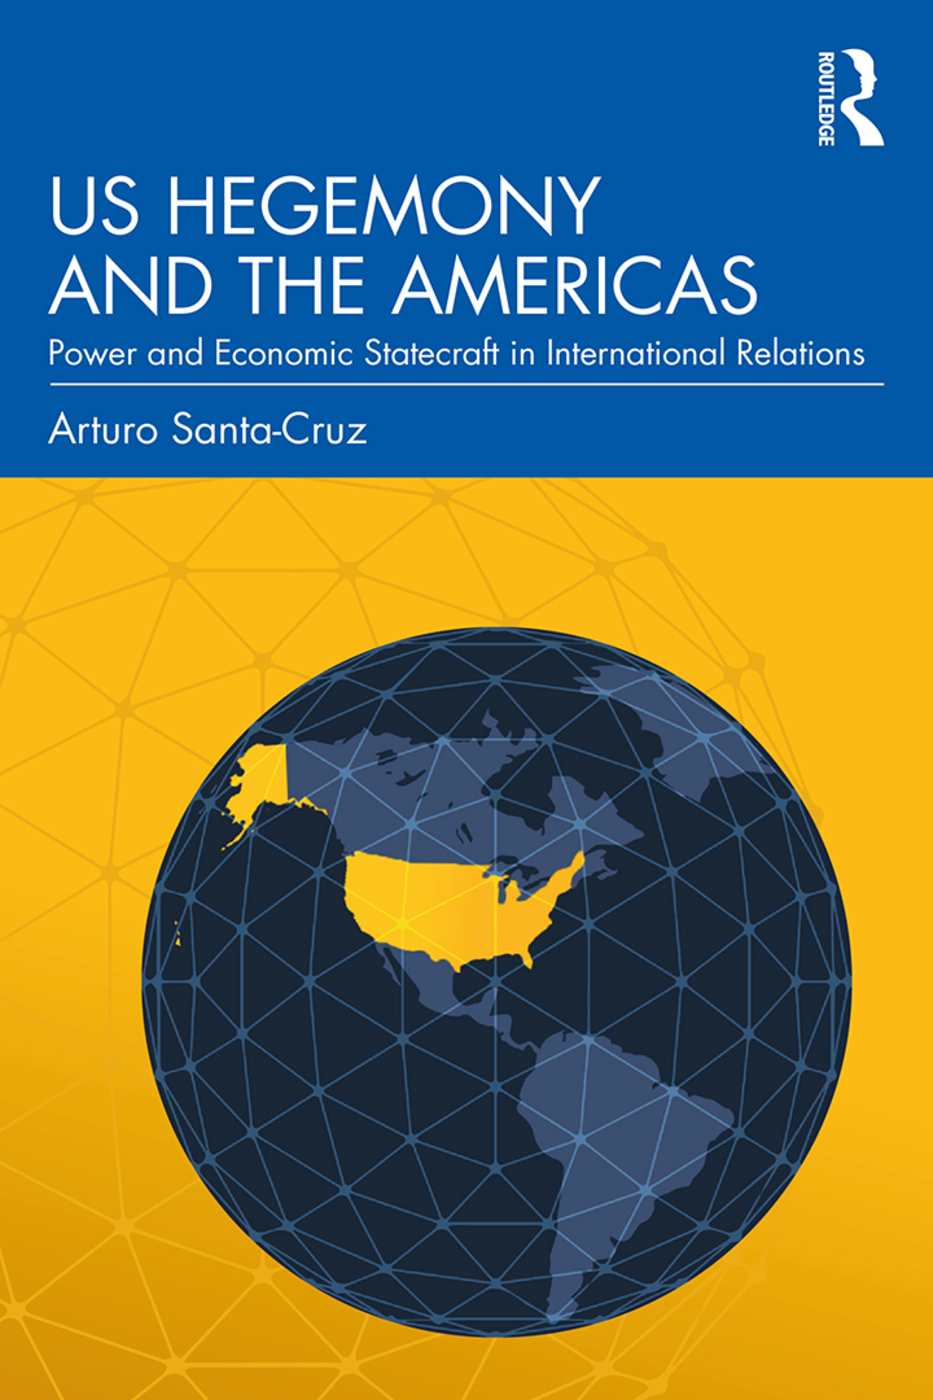 US Hegemony and the Americas: Power and Economic Statecraft in International Relations book cover